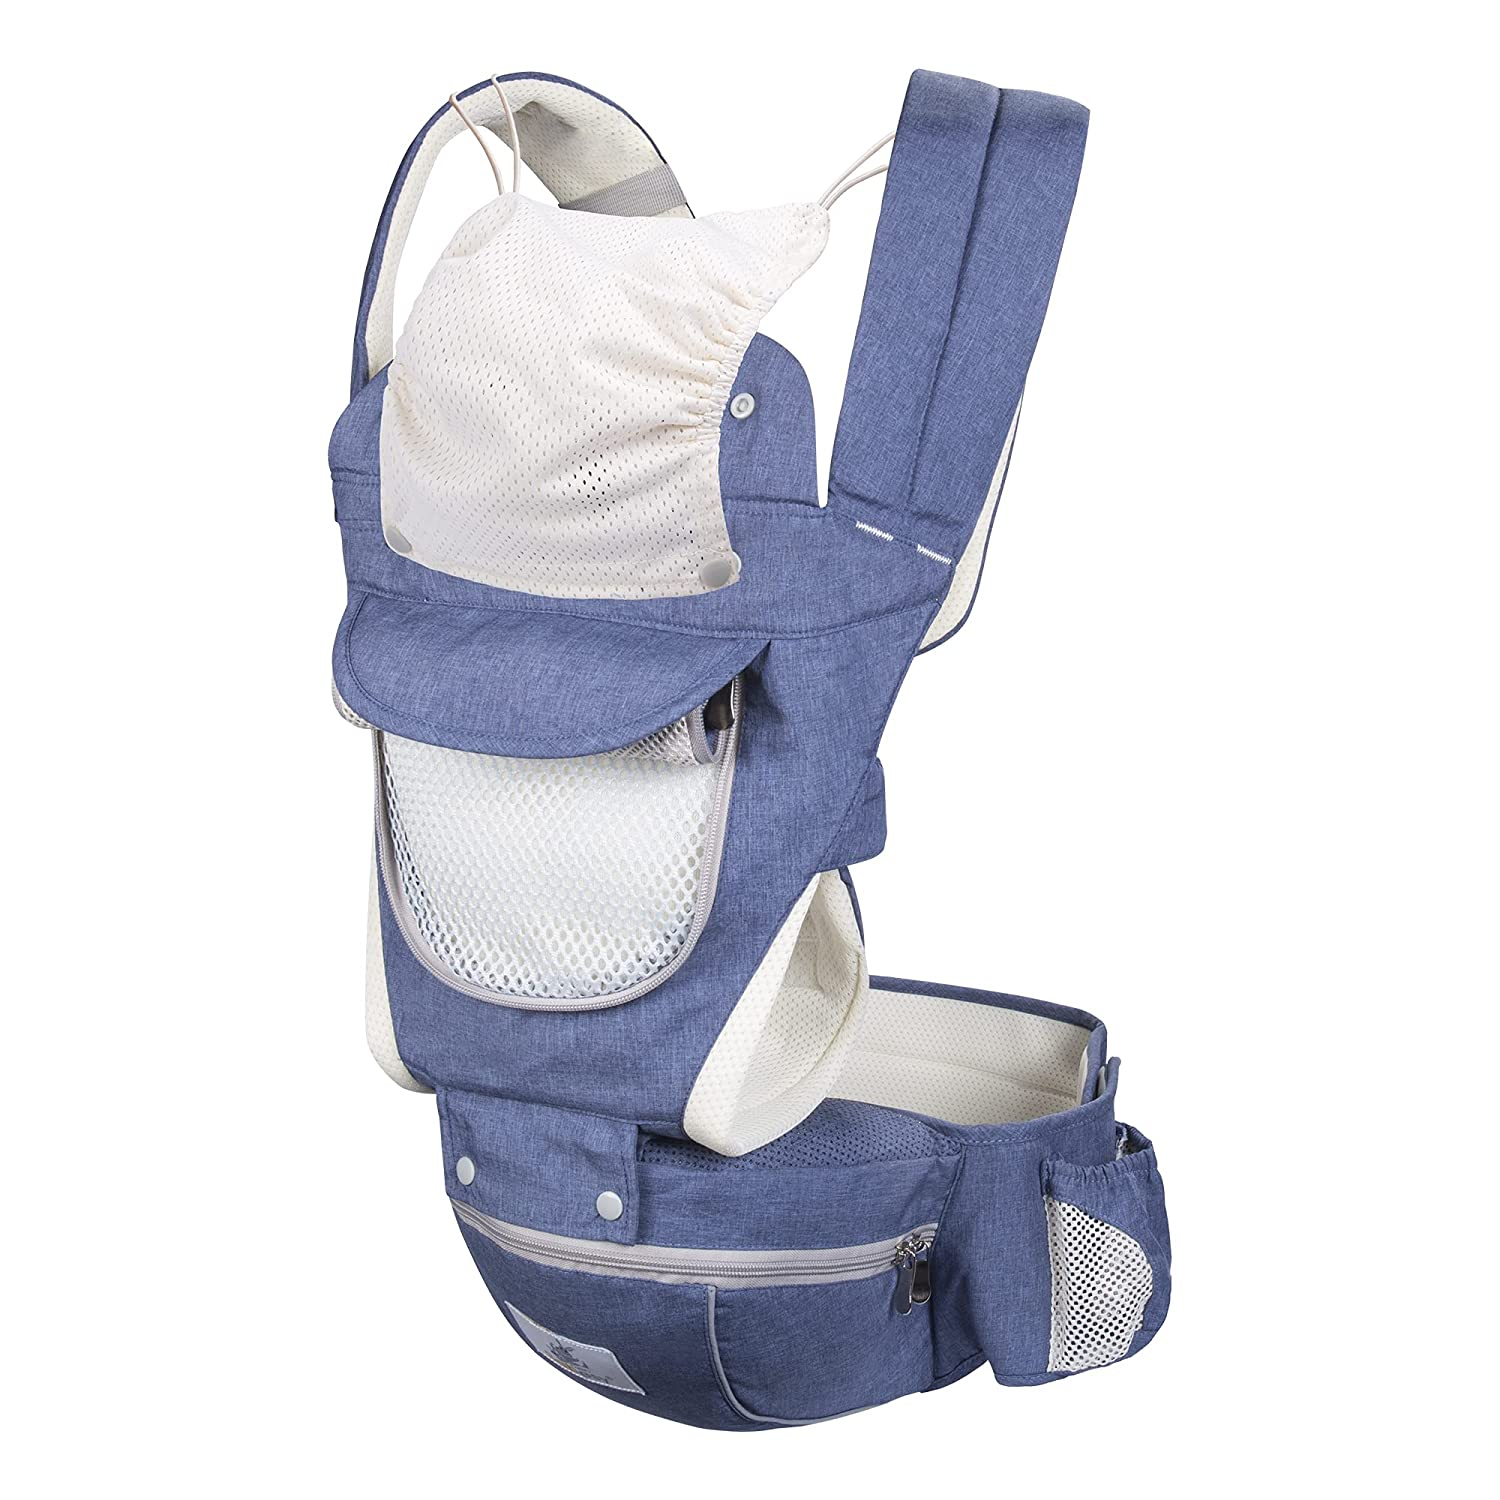 Agudan Baby Carrier, 6-in-1 Adjustable Ergonomic Waist Stool, Suitable for Newborns and Toddlers 0-36 Months